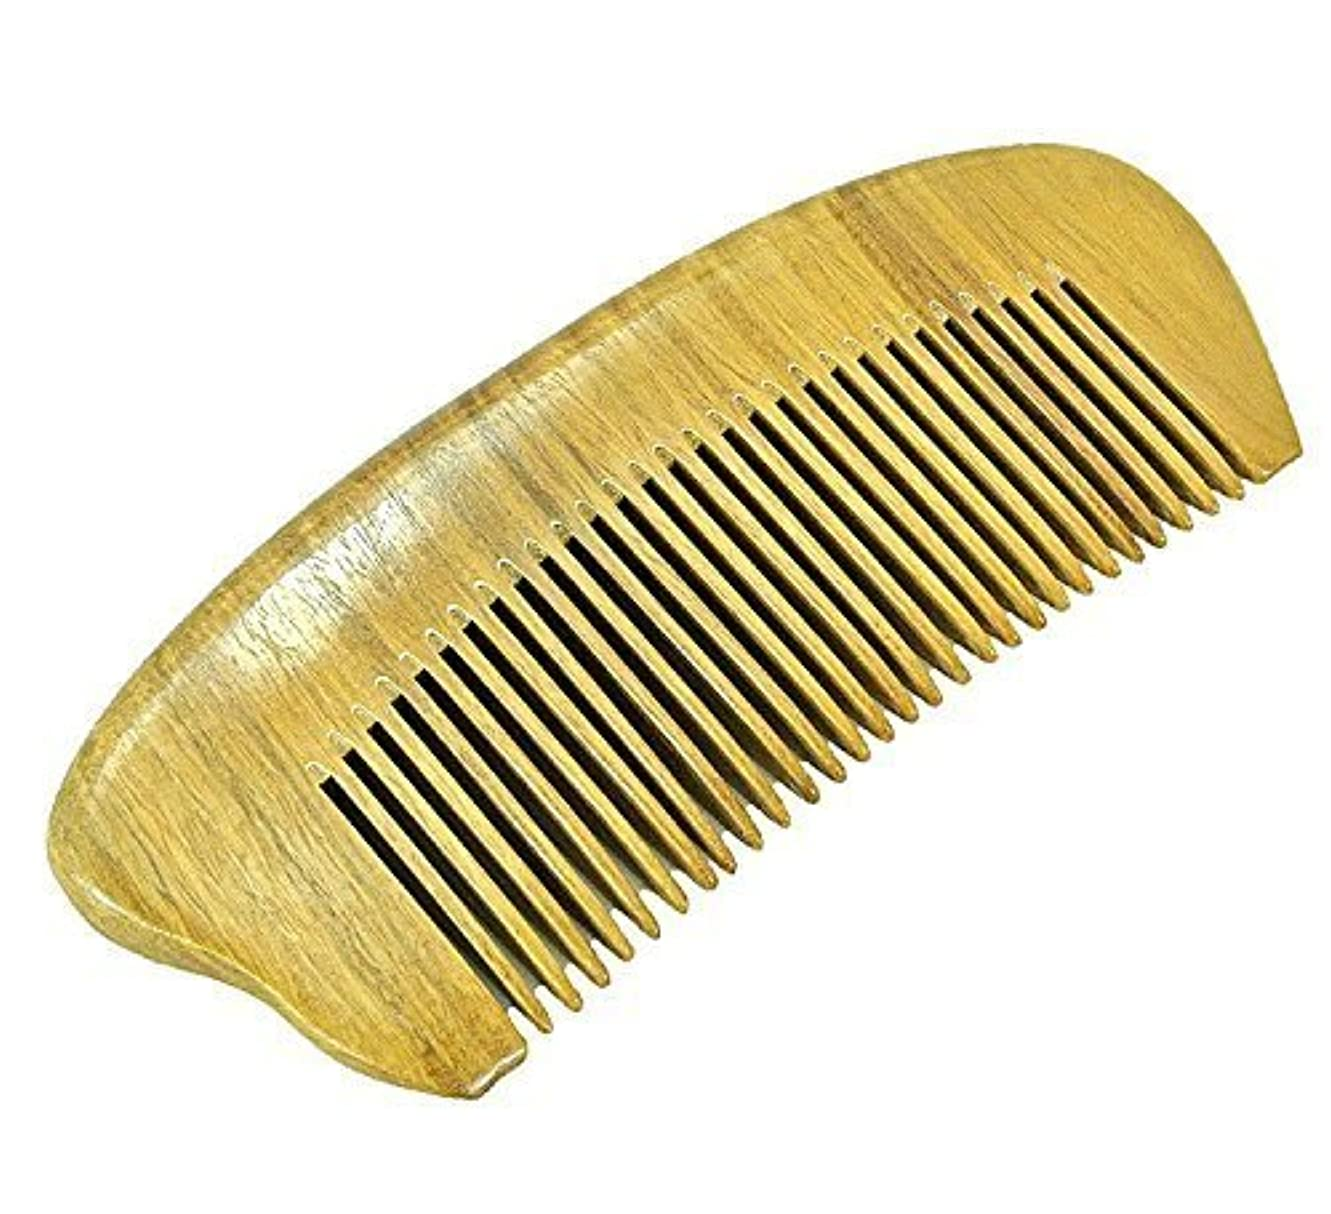 バッグ安価なマーチャンダイザーEQLEF? Green sandalwood no static handmade comb,Pocket comb (short) [並行輸入品]